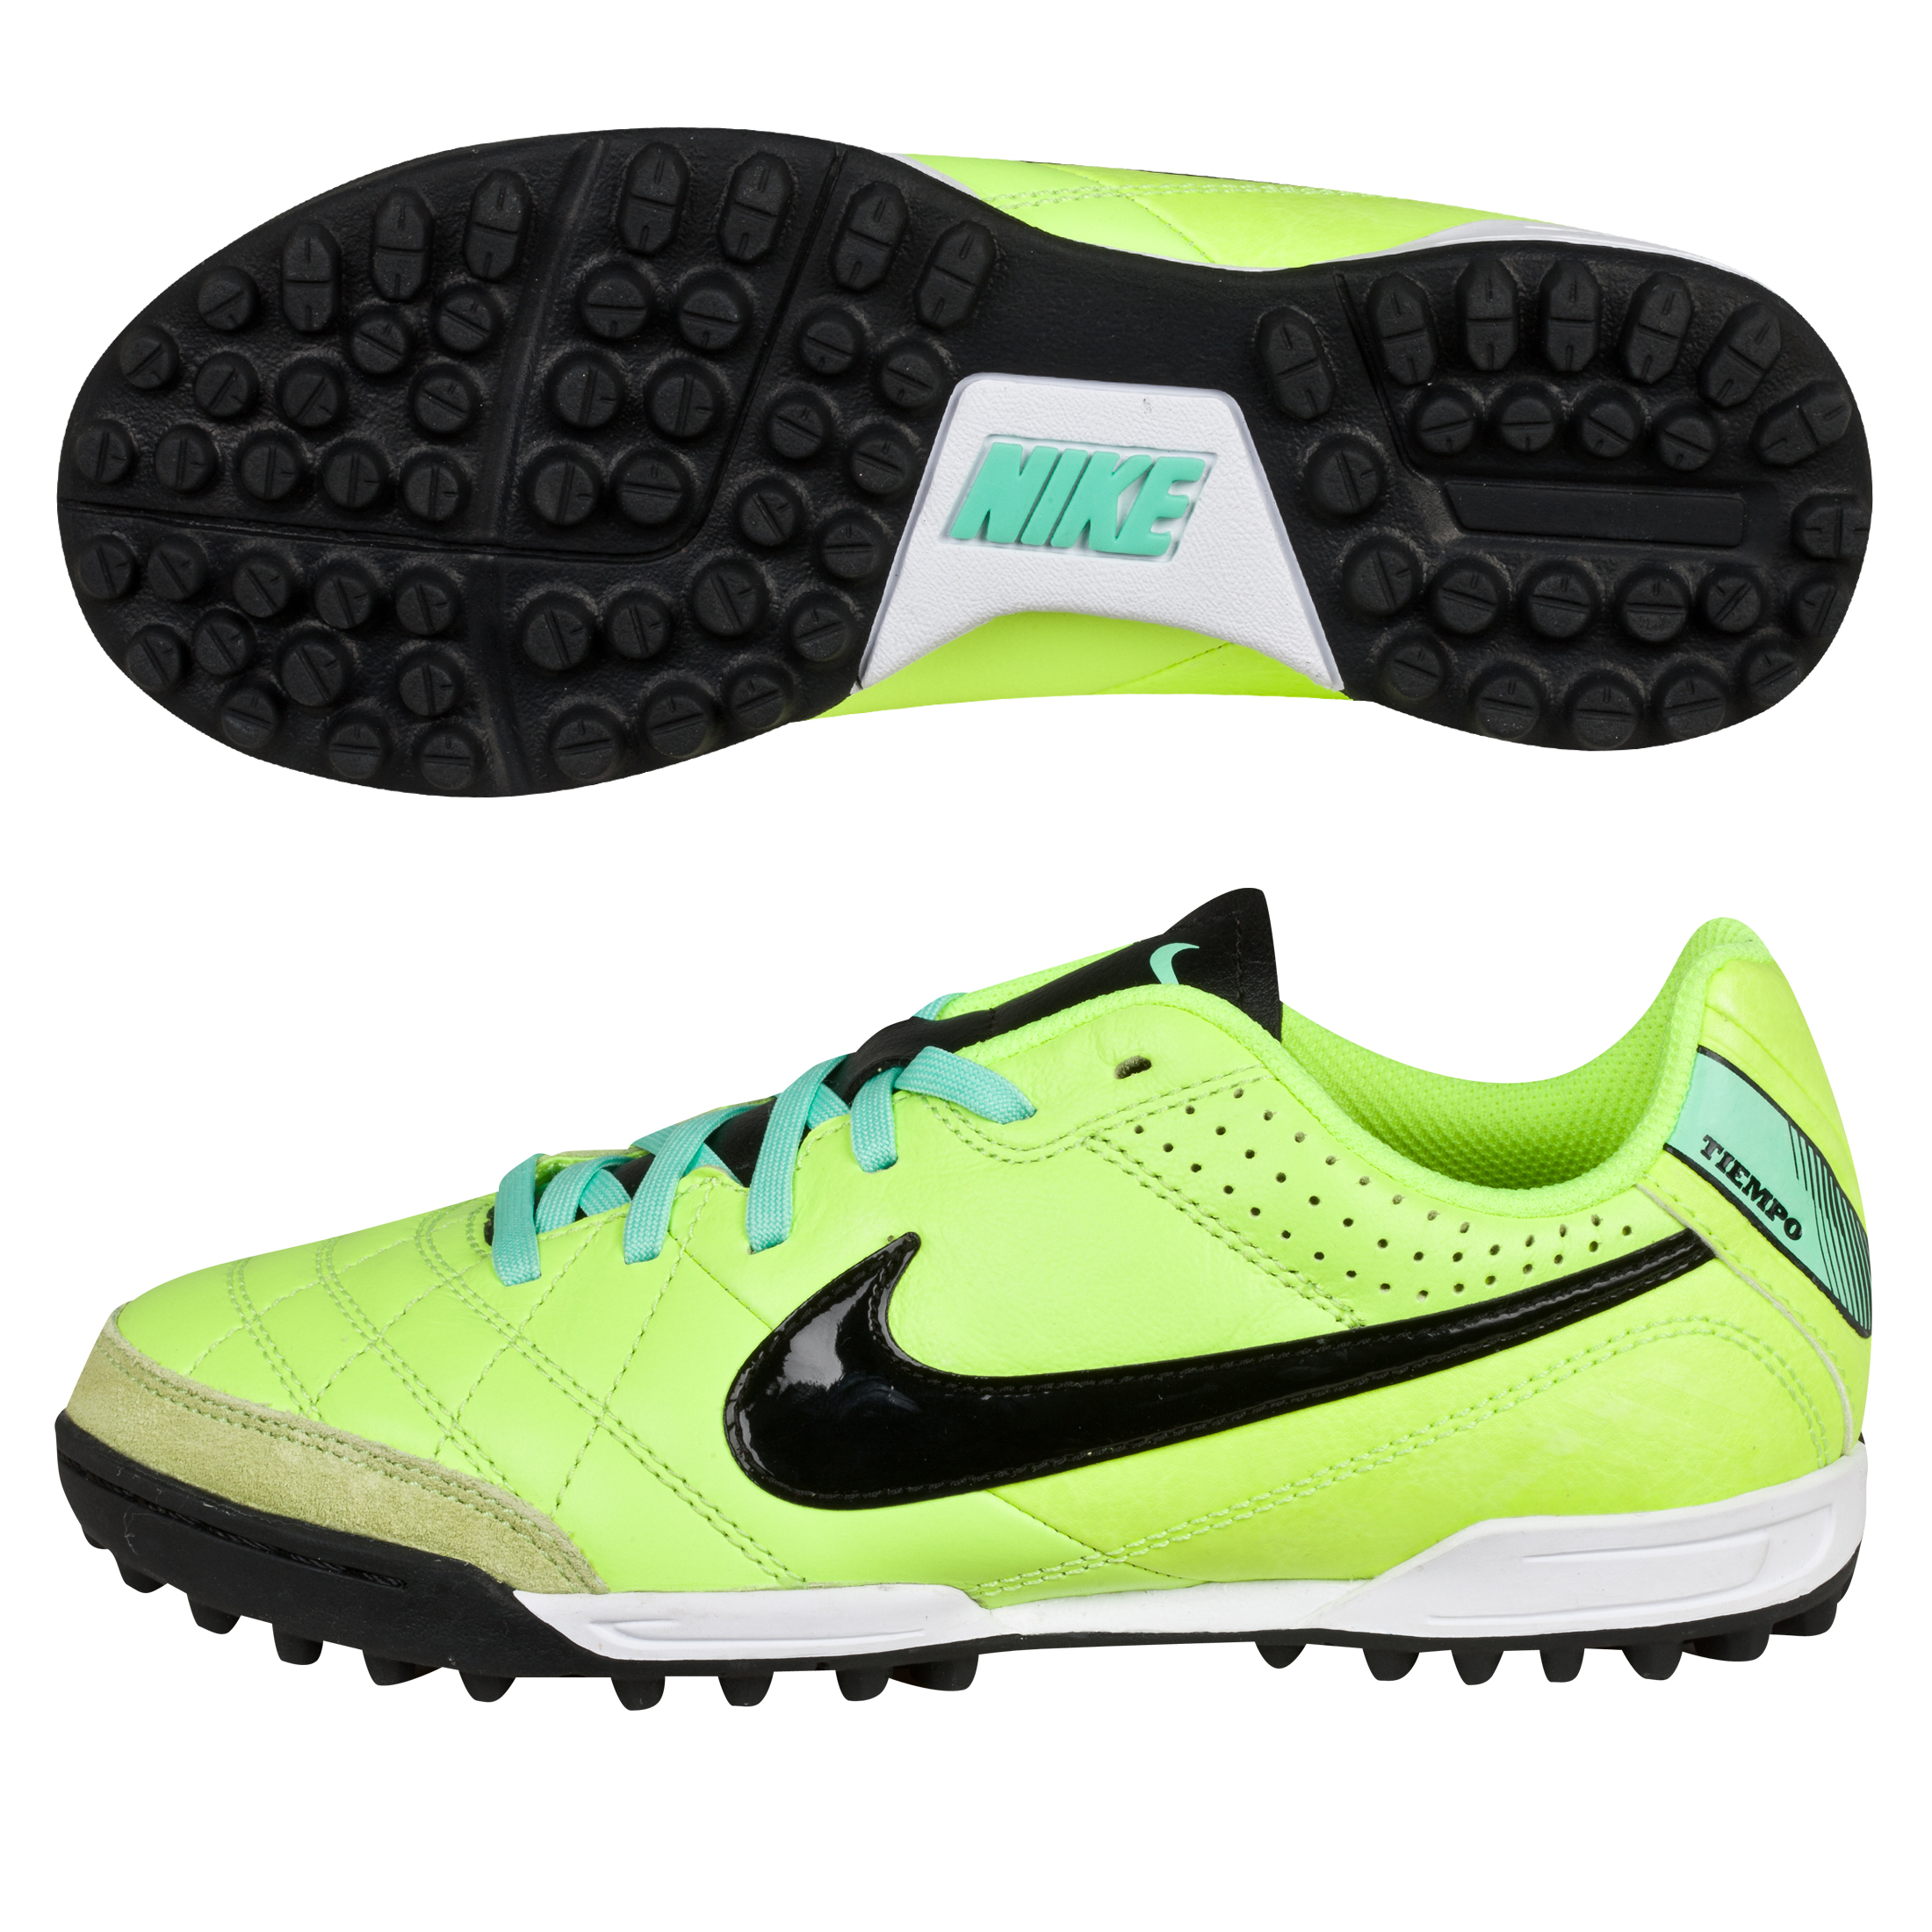 Nike Tiempo Natural Iv Astroturf Trainers - Kids-Volt/Black/Green Glow Lt Green